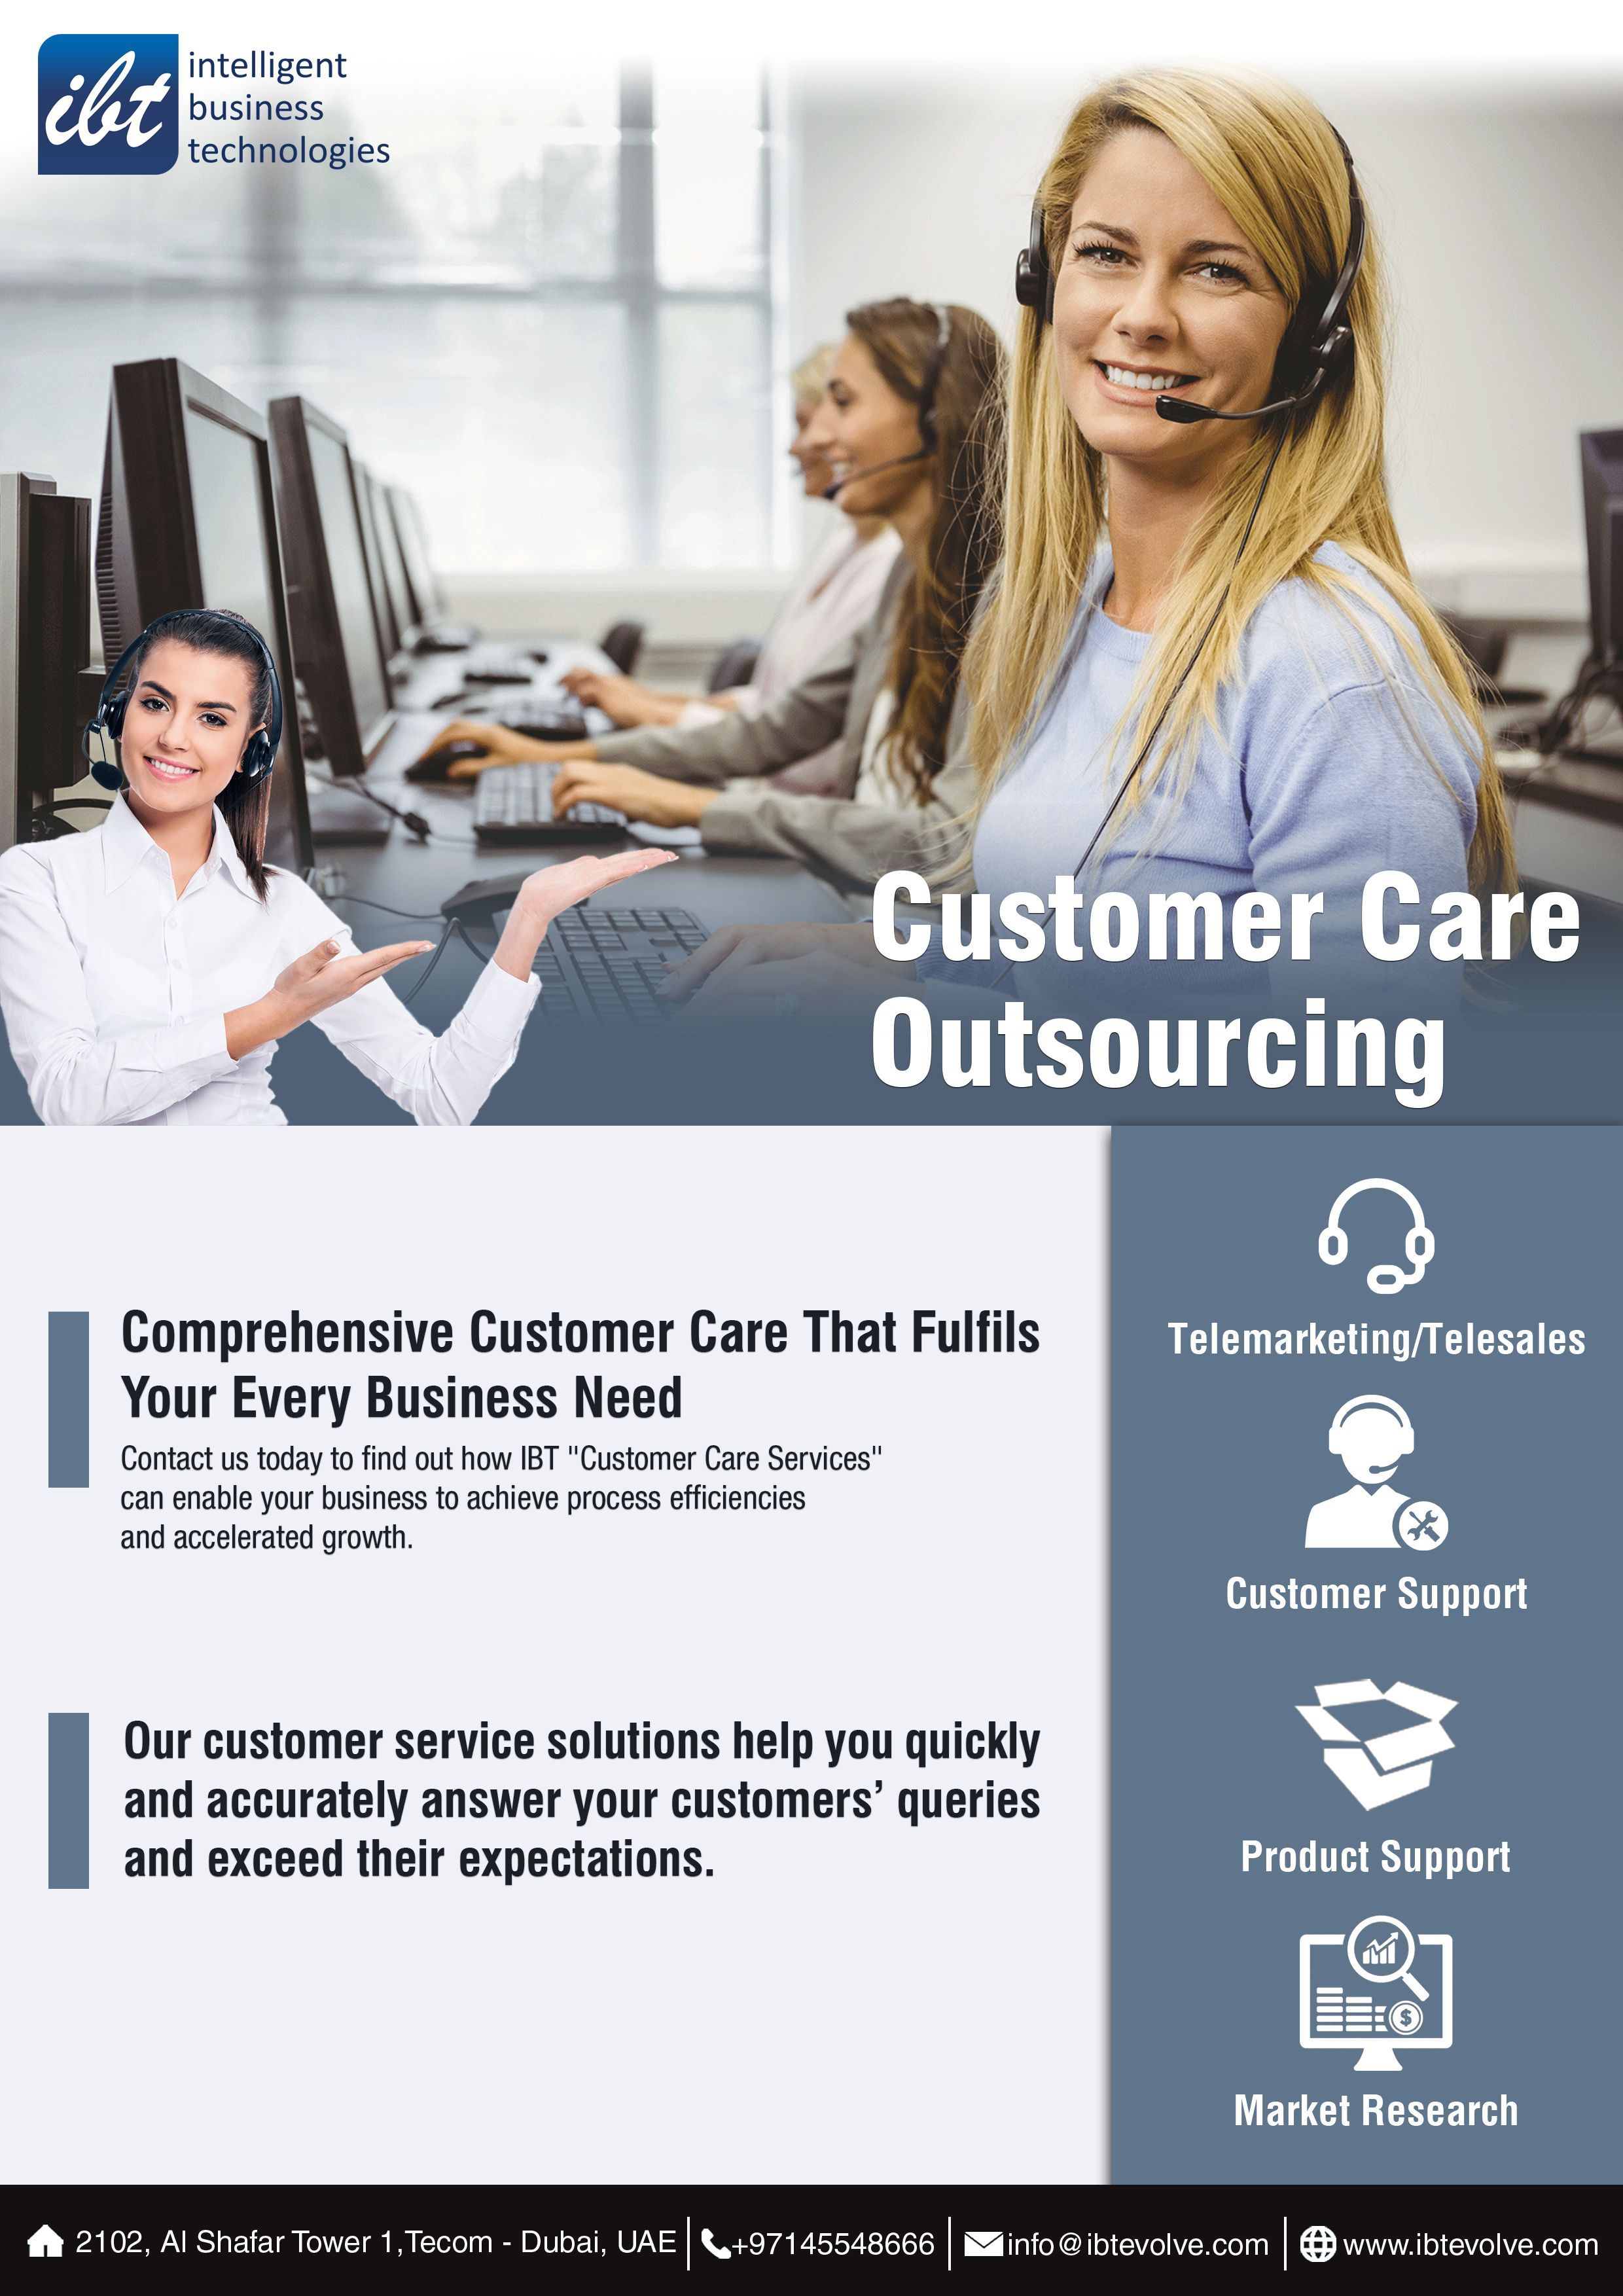 Customer Care Outsourcing Services In Dubai Abu Dhabi Uae